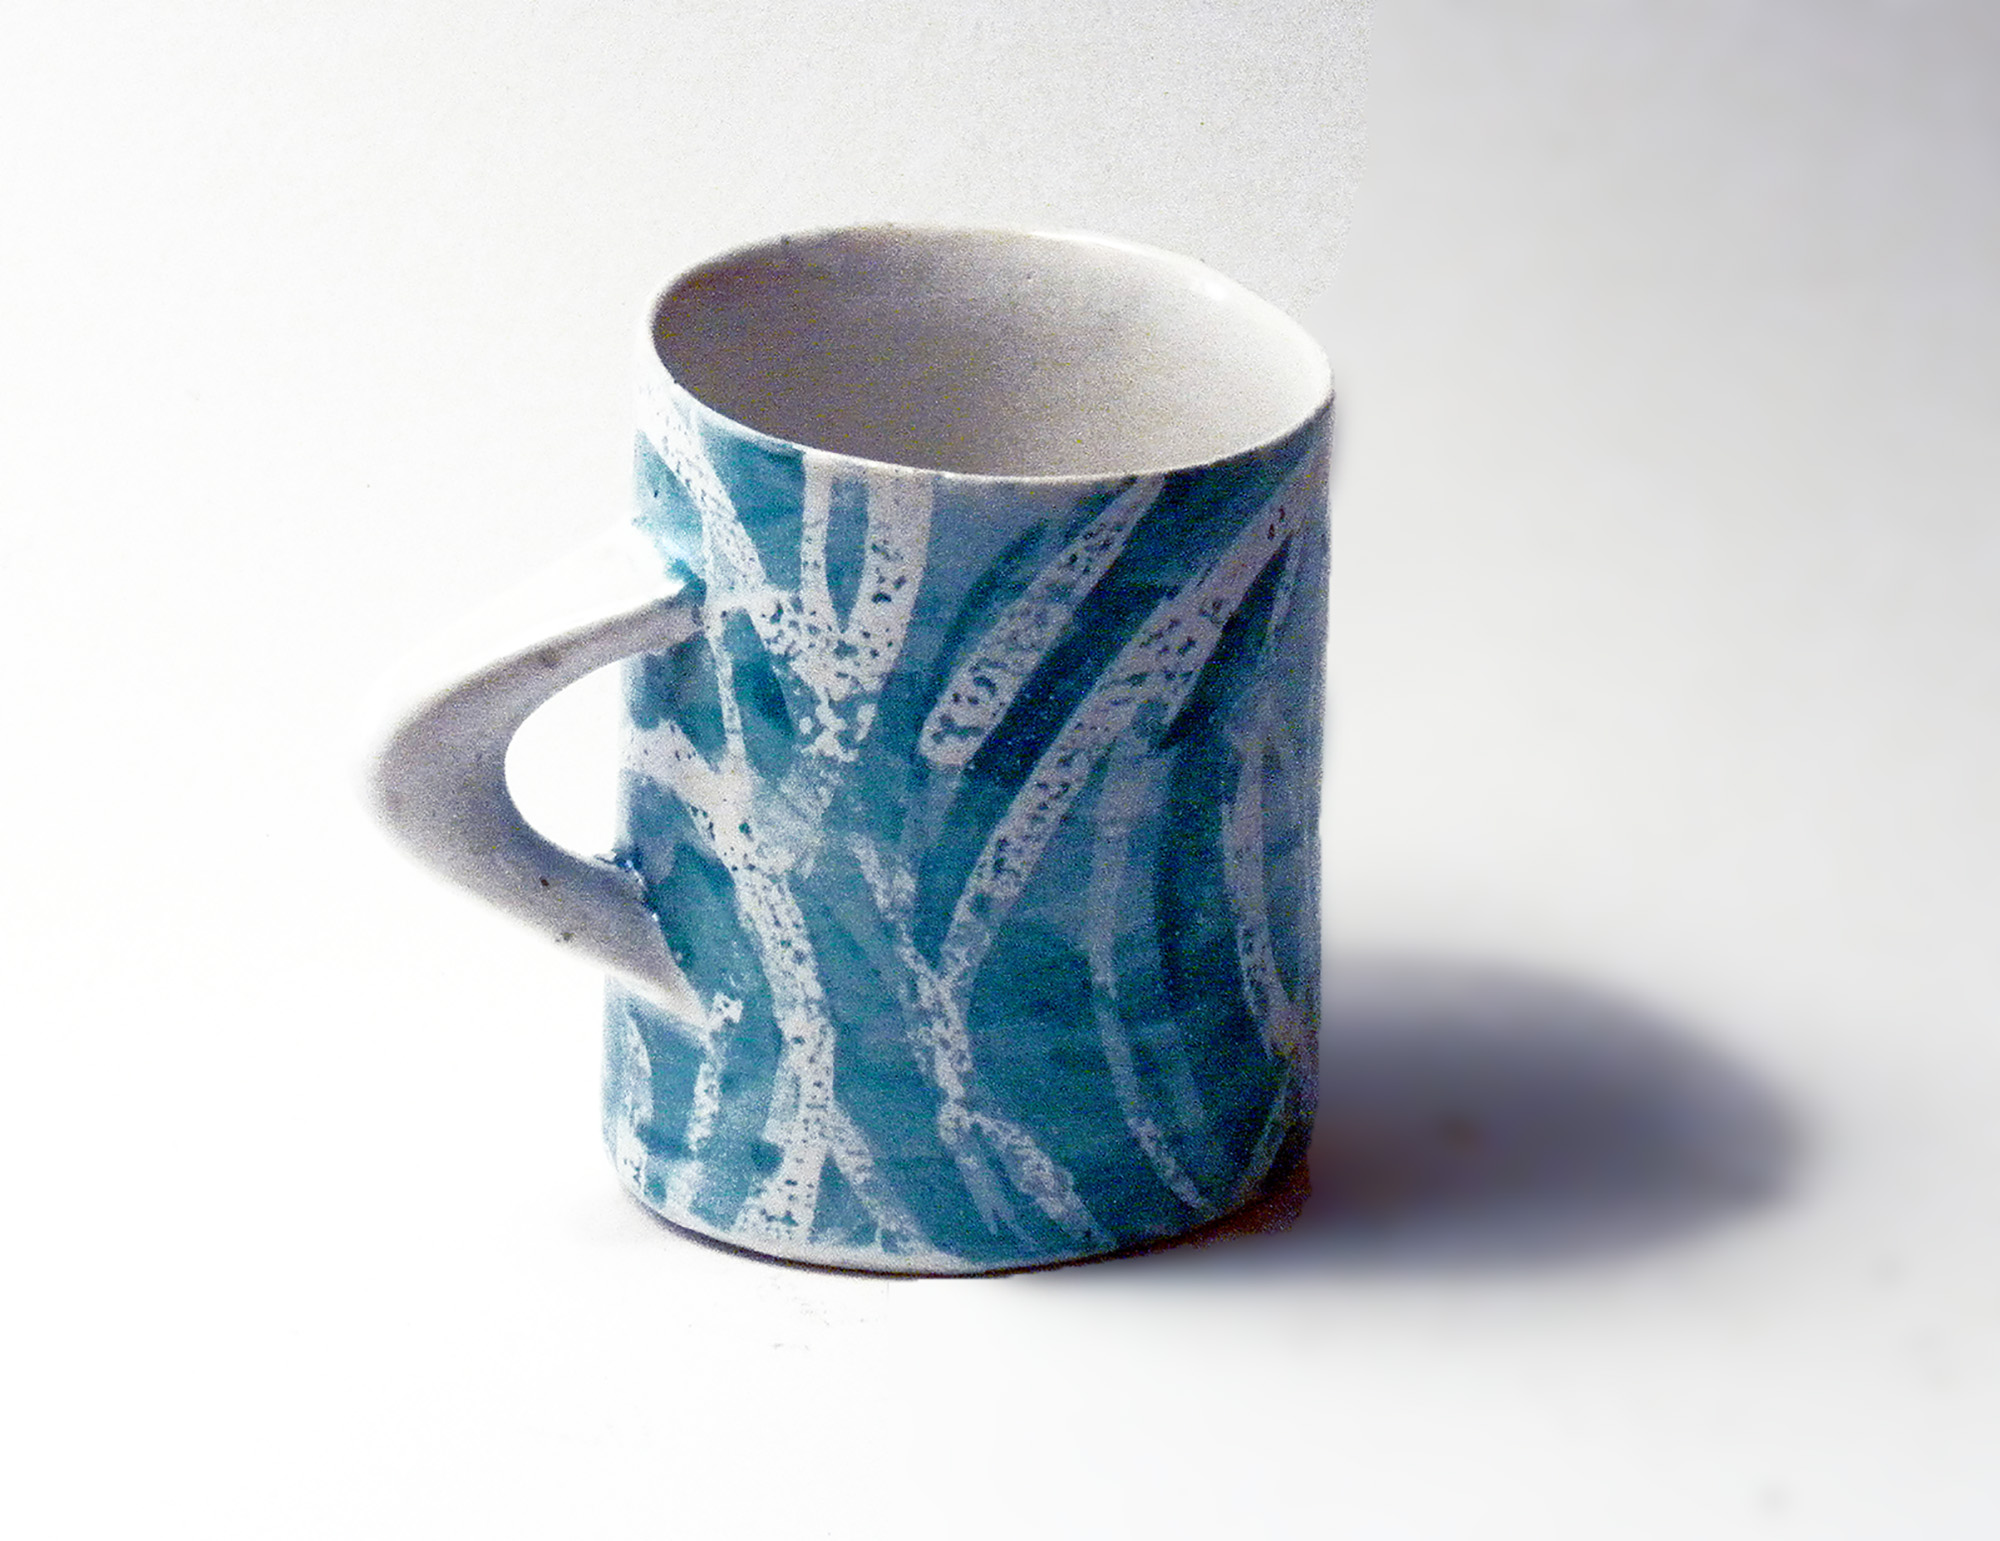 Reversed Oval Mug in Turquoise Grass Pattern